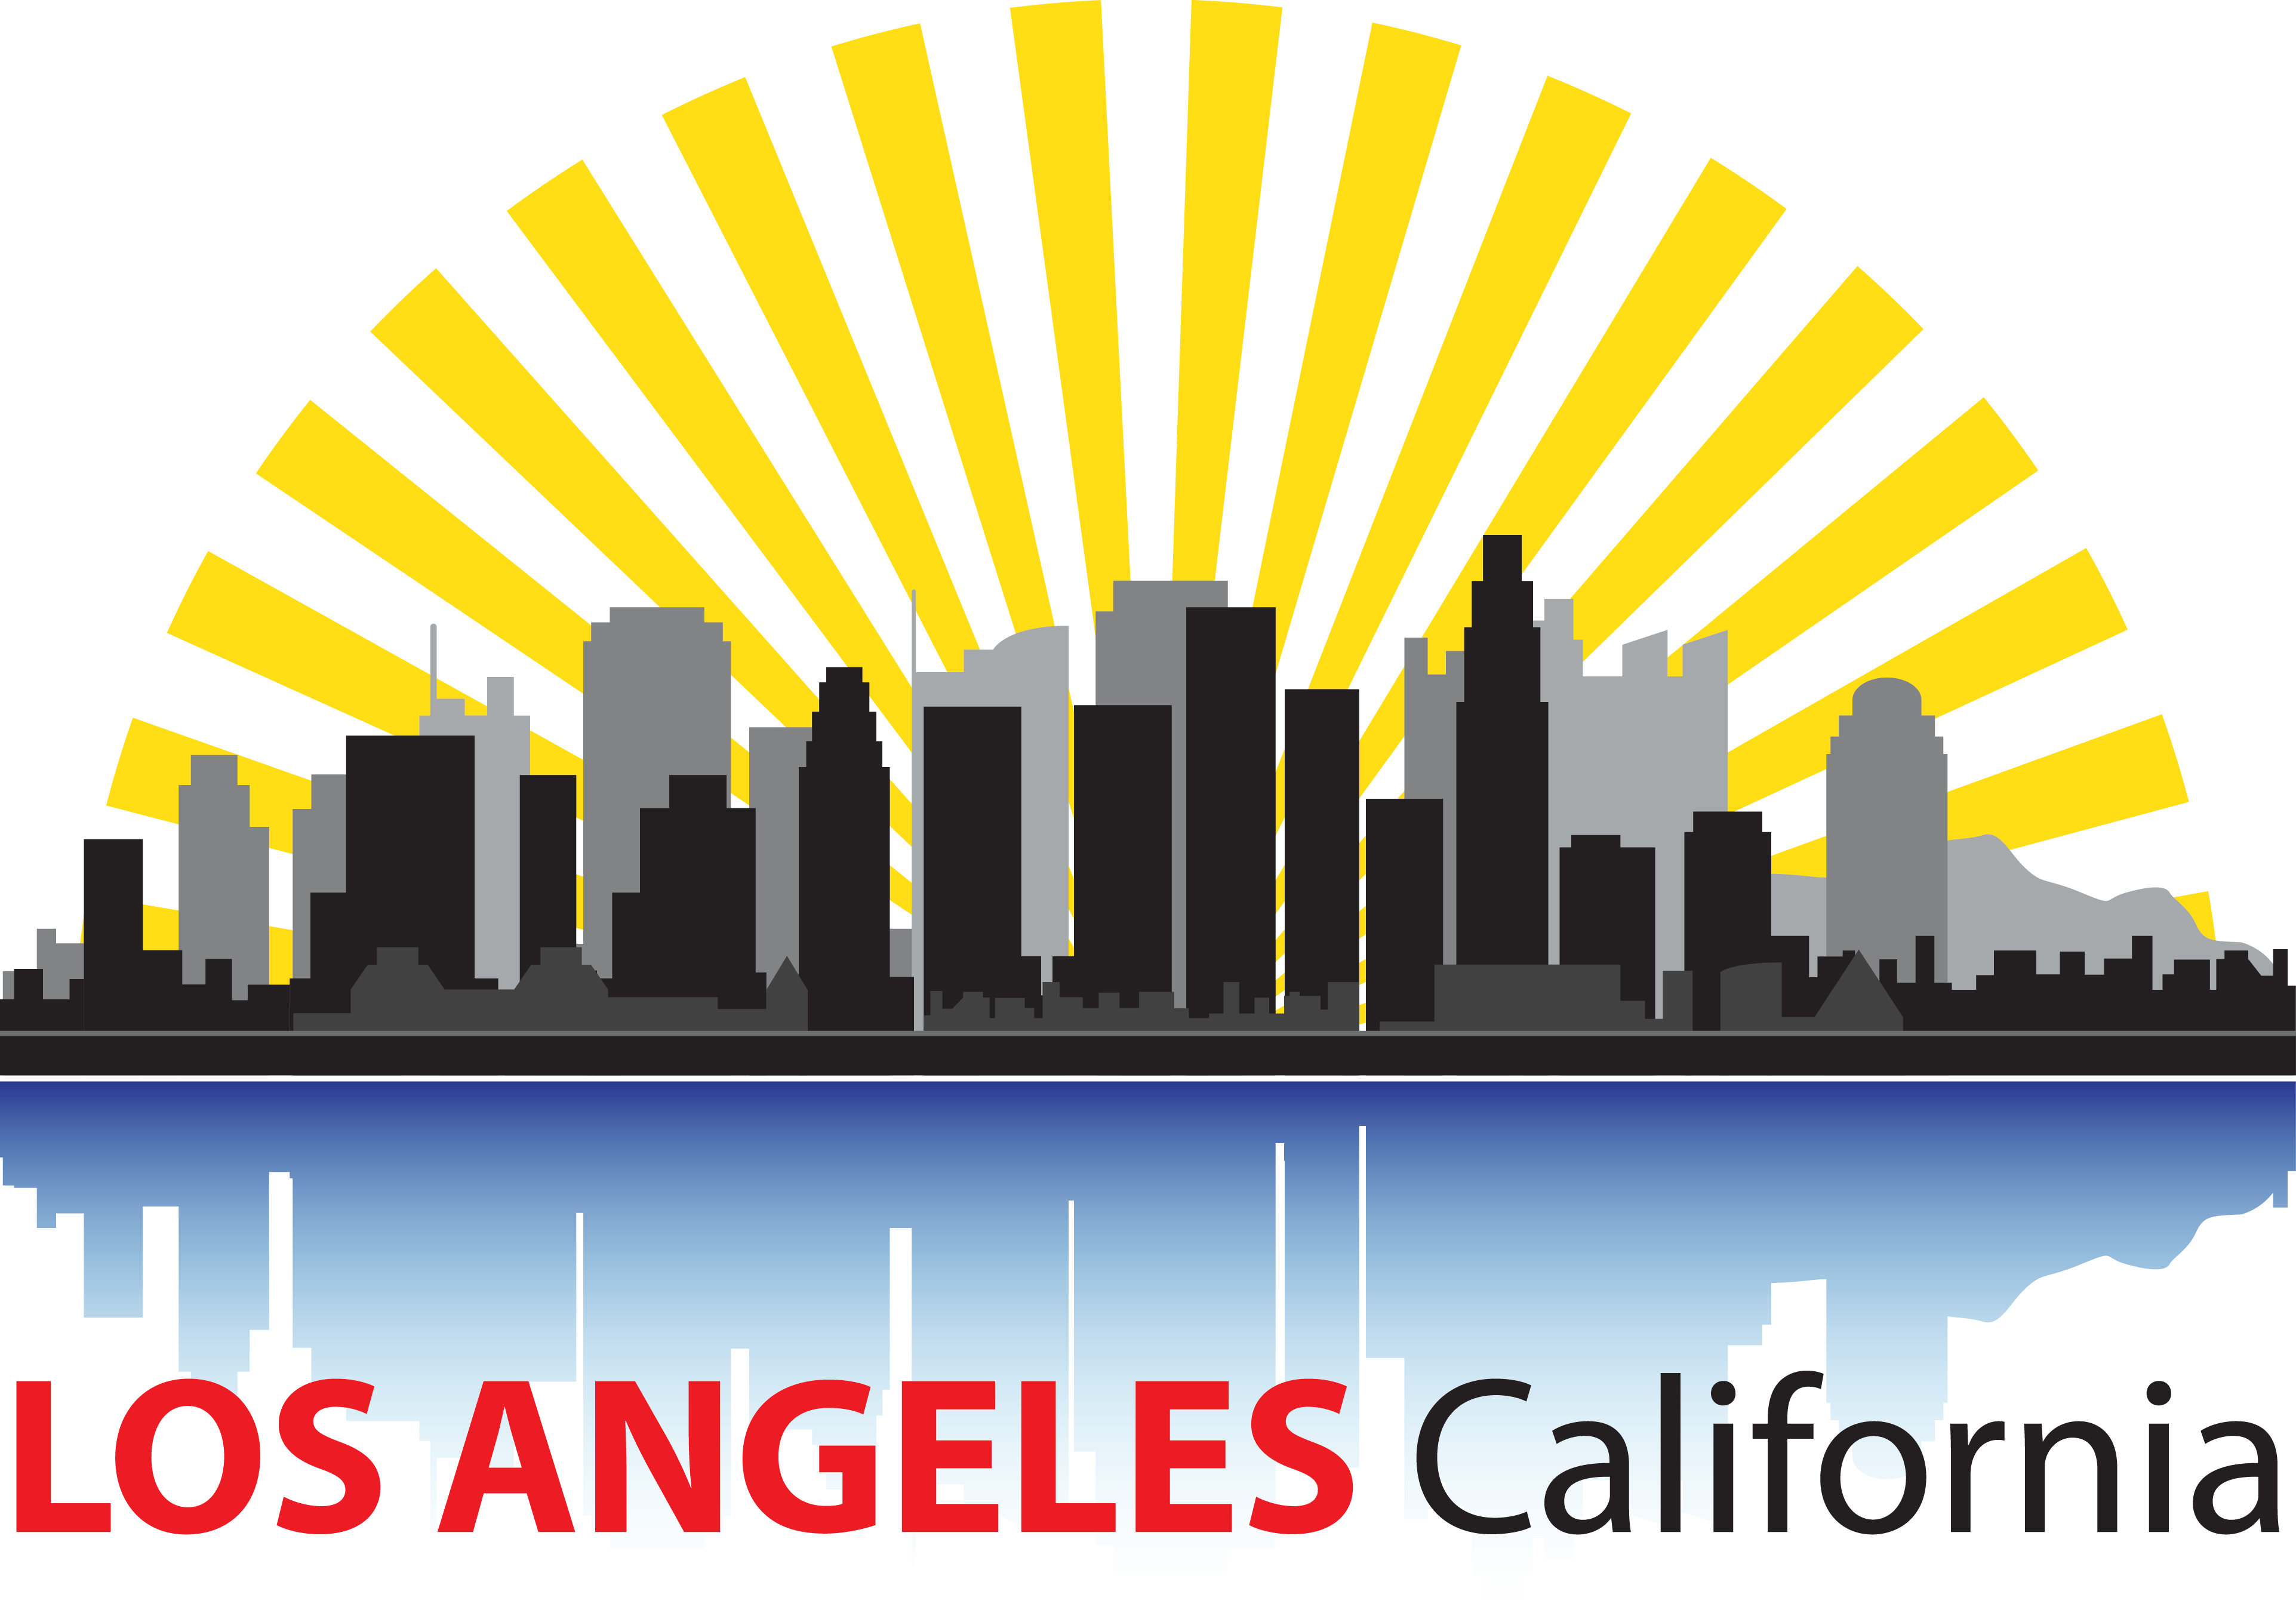 Los Angeles clipart Corporate A Games in Corporate